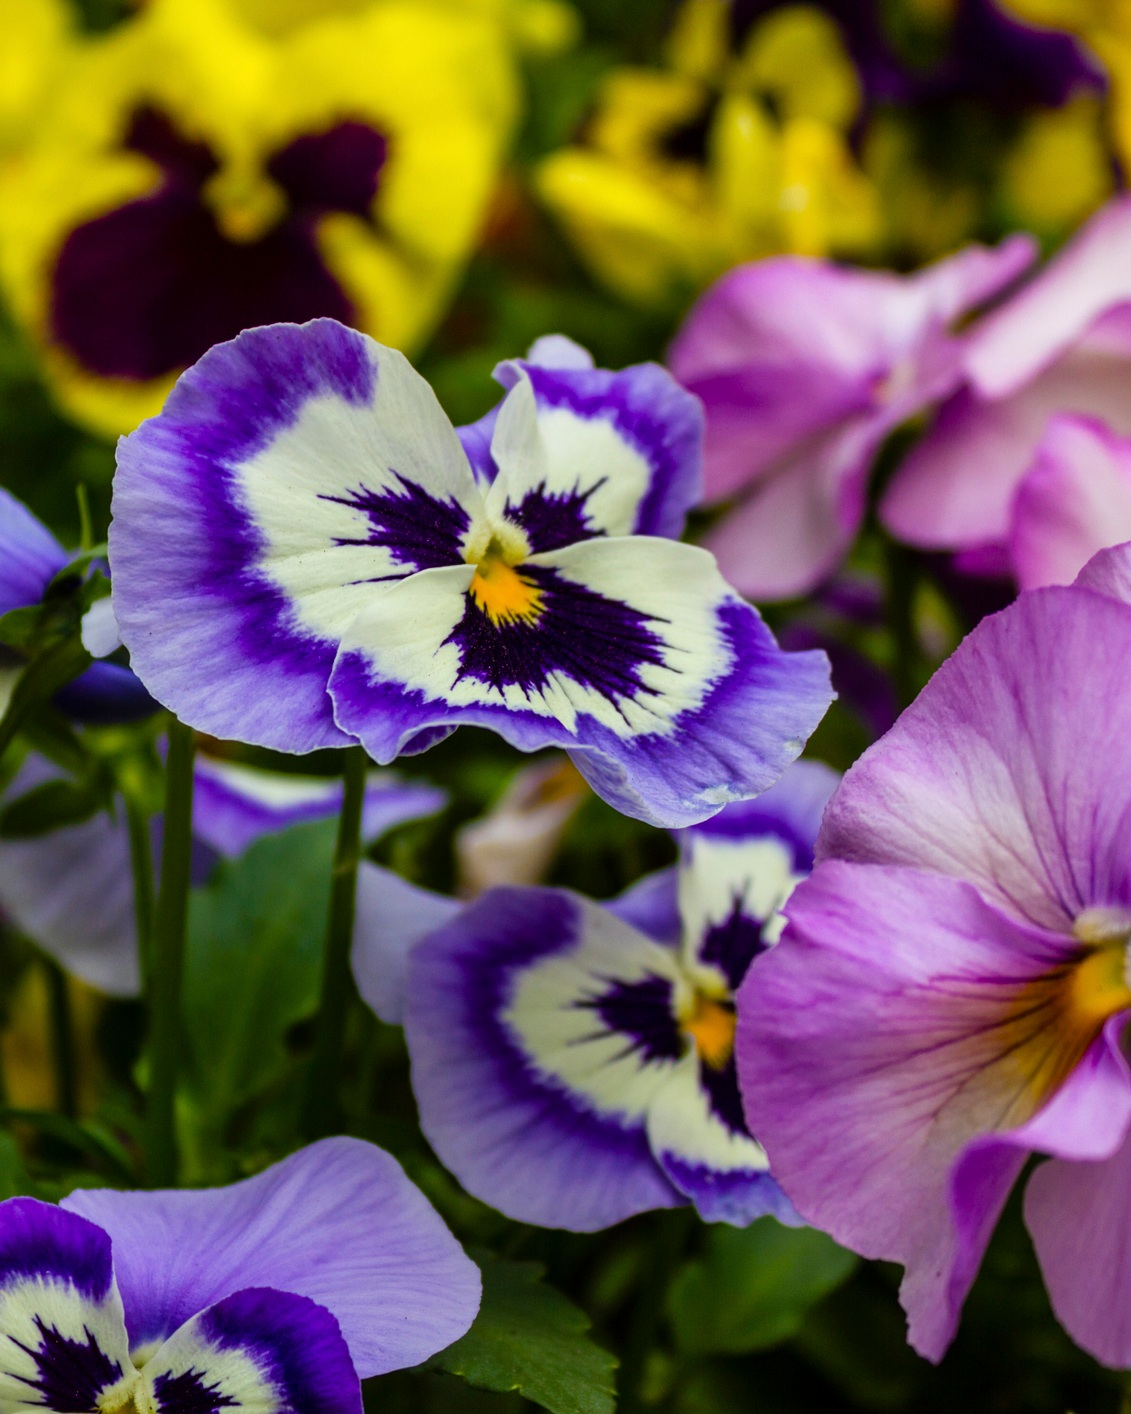 "Pansies - A cool season flower that is very easy to grow from seed or transplant. Although, because they are cool season, starting with transplants saves time in the shorter growing season. Flats of pansies in 2"" starter pots are readily available.Pansies need full sun and are planted in early spring or fall. They wither in the summer heat. They can withstand a frost or freeze, and don't mind a little bit of snow. Grow them in containers, annual beds or as groundcovers.Fertilize every 7-10 days for optimal bloom.Water weekly and consistently. Lack of water is the number one reason most pansies do not thrive.Pansies are a favorite for cake decorating, tossed with salads, sugar coated, and added to soups."